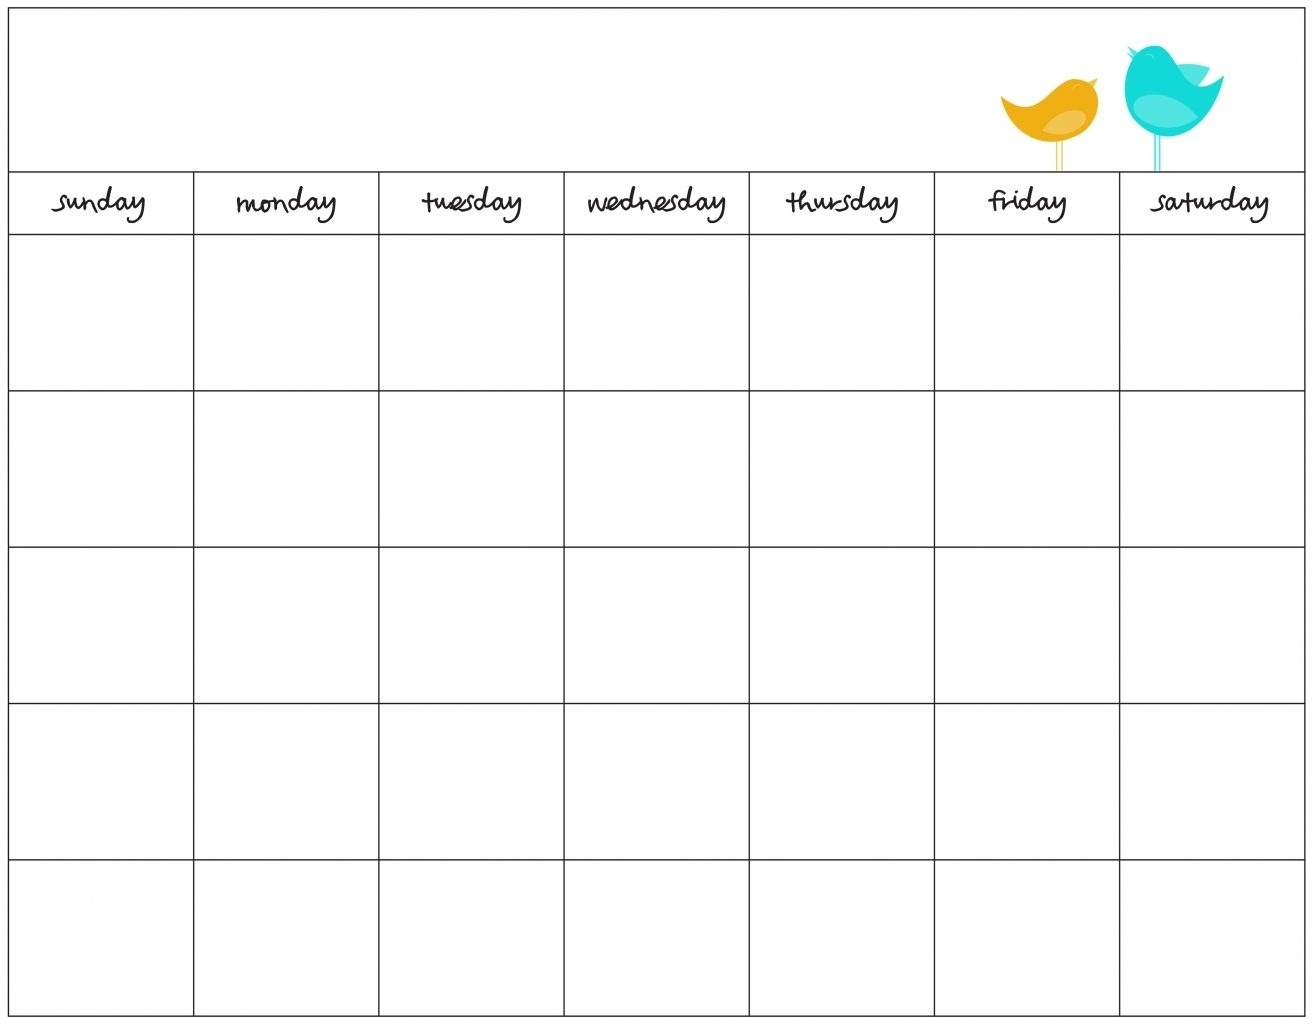 7 Day Schedule Template Elegant Blank Calendar Of Ready Thus  7-Day Week Blank Calendar Template